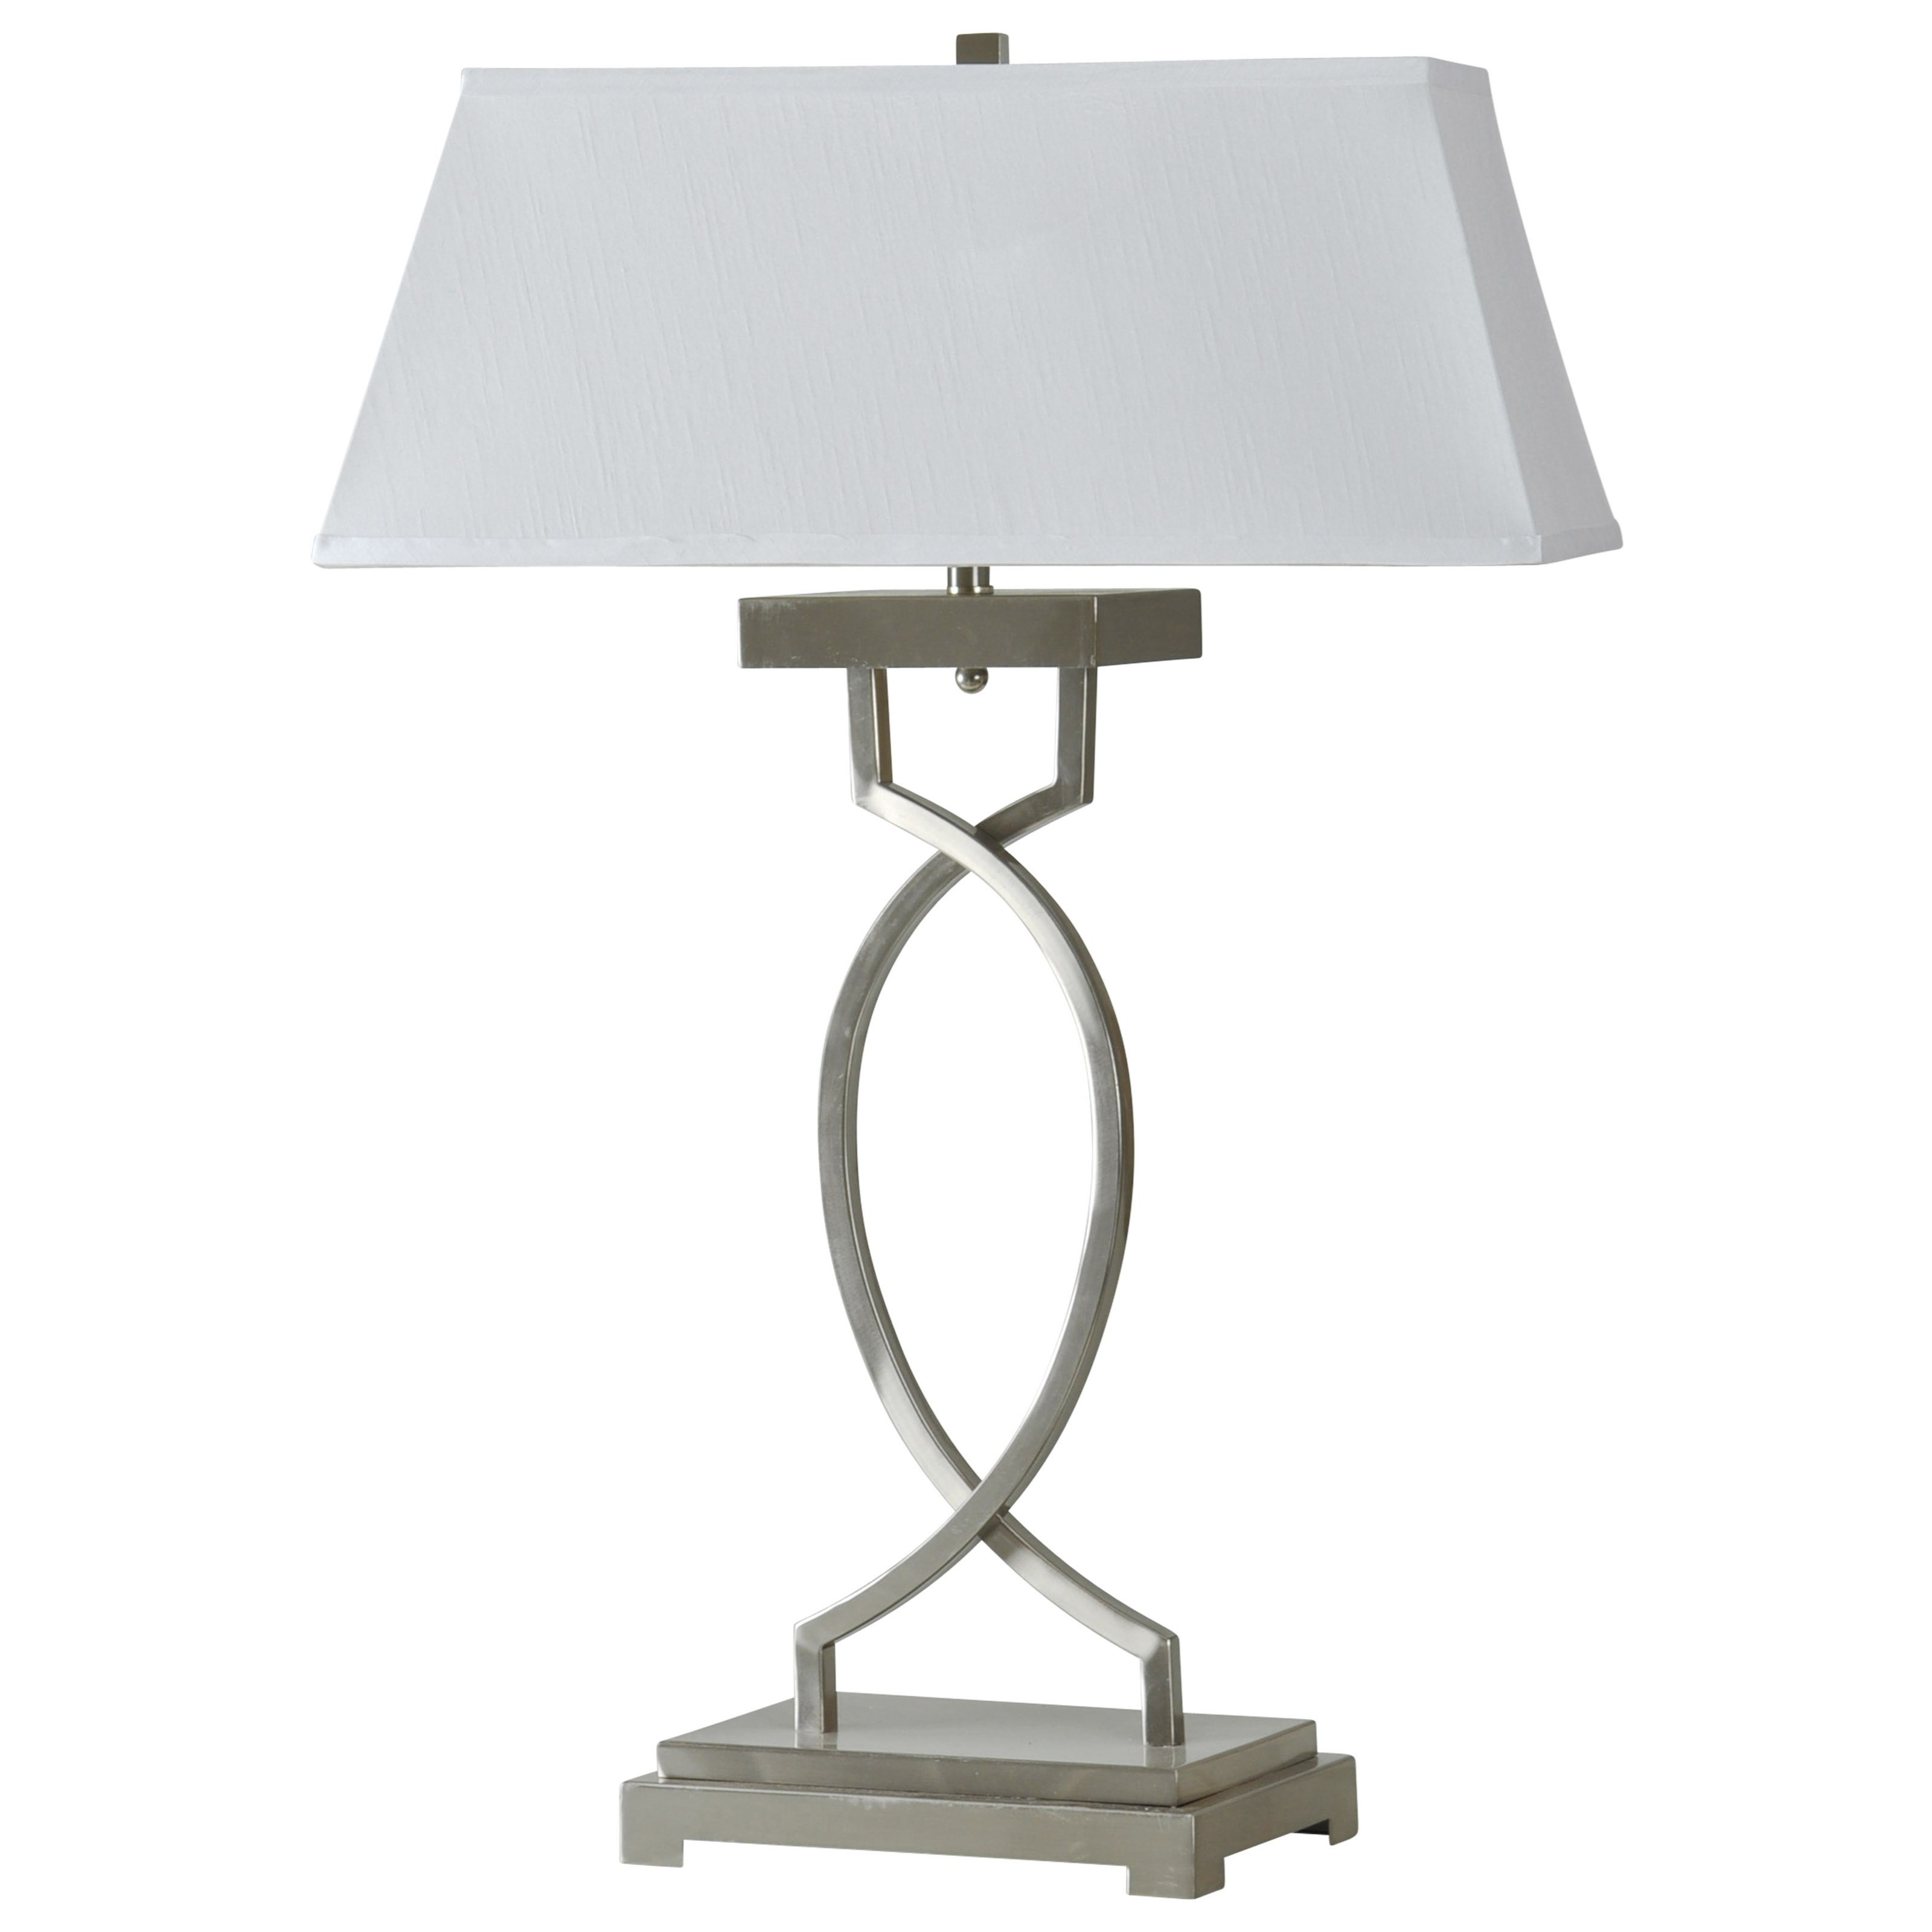 Lamps Brushed Steel Transitional Lamp at Ruby Gordon Home